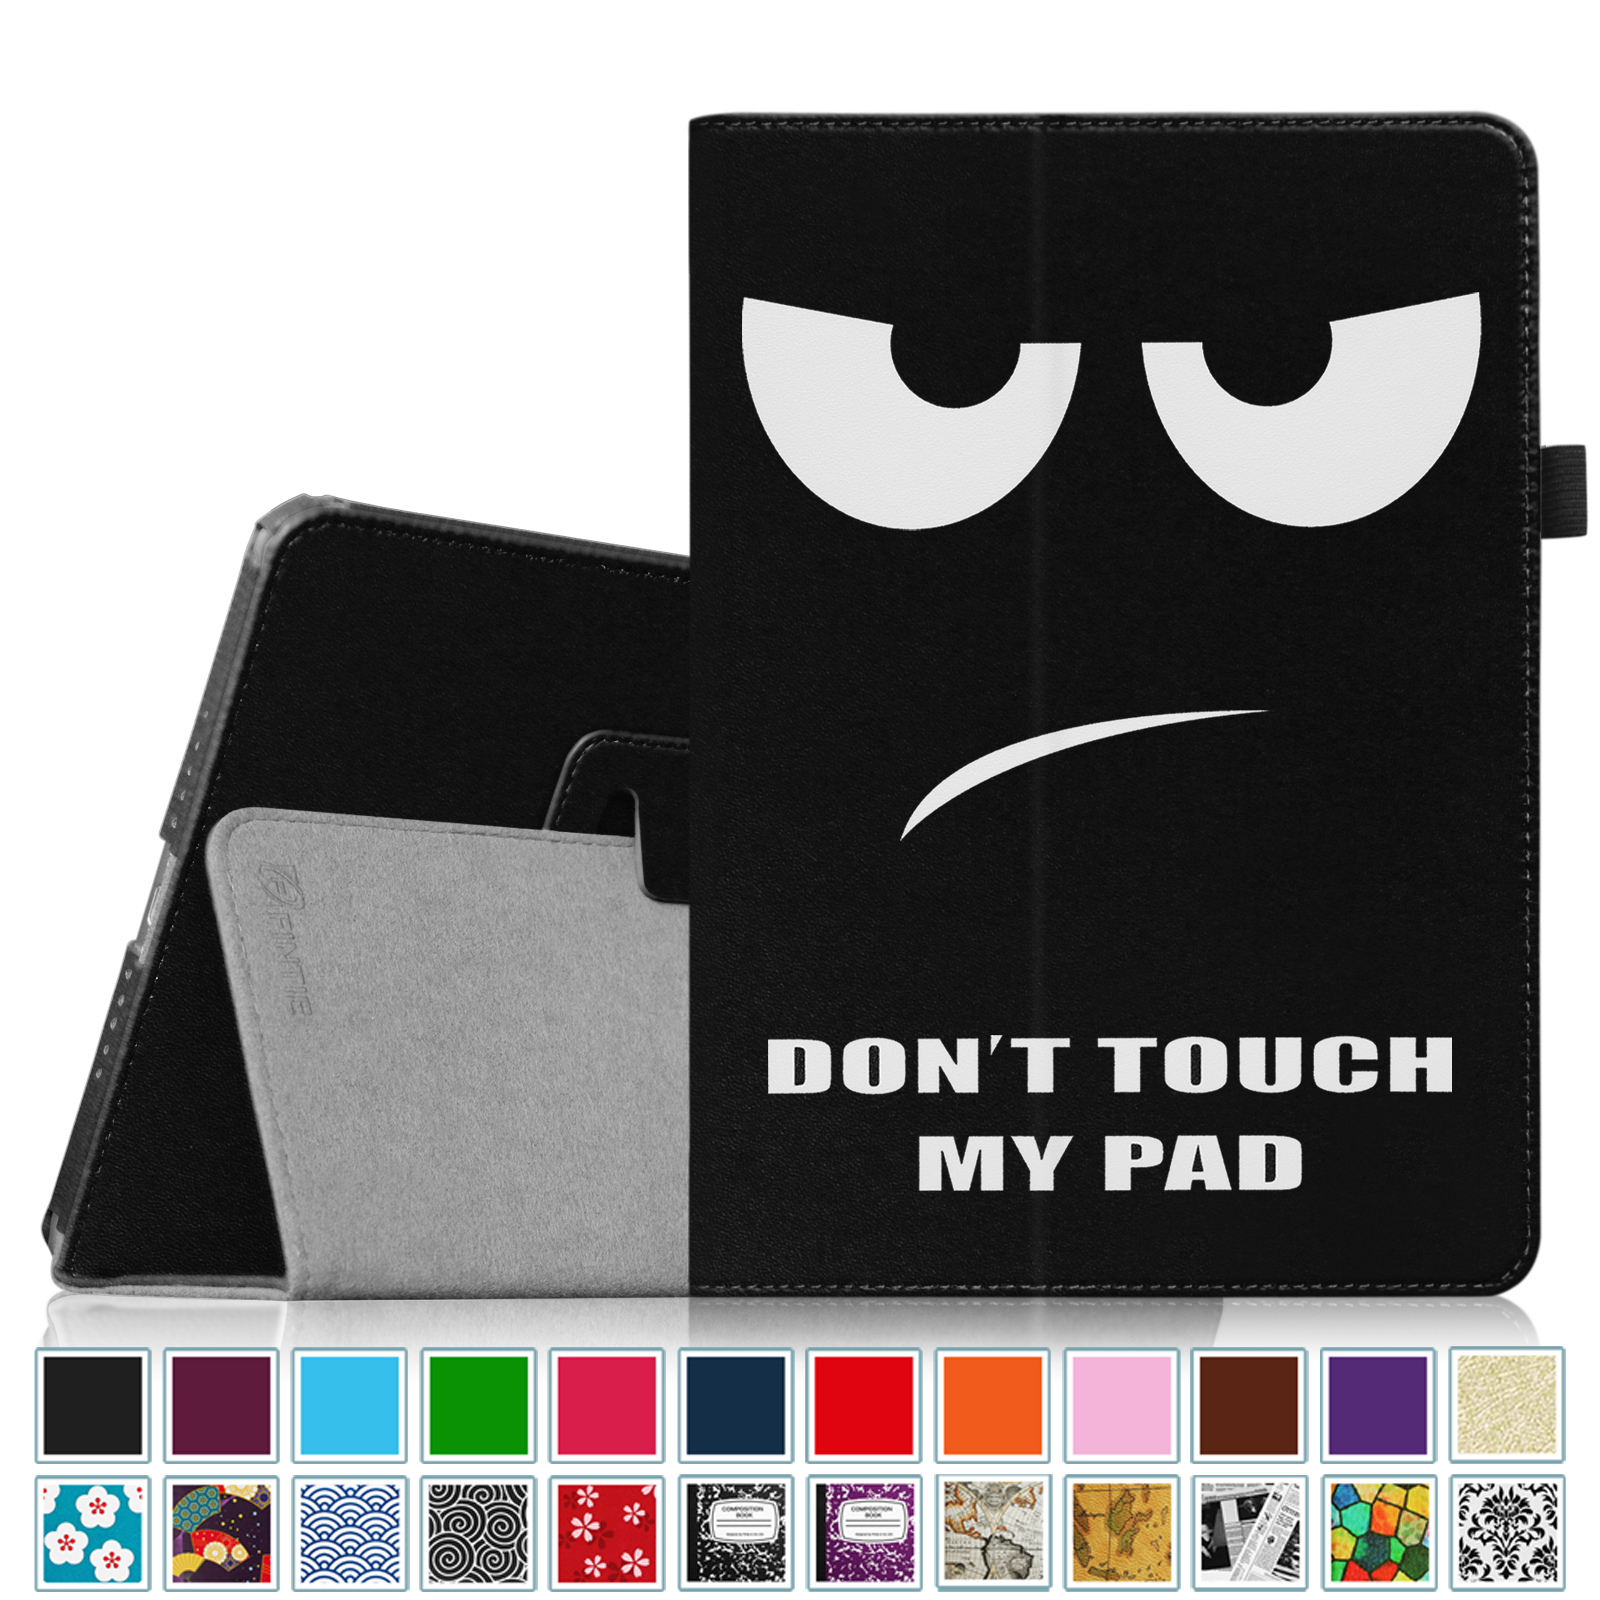 iPad Air 2 Case [Corner Protection] - Fintie Slim Fit Leather Folio Case with Auto Sleep / Wake, Dont Touch